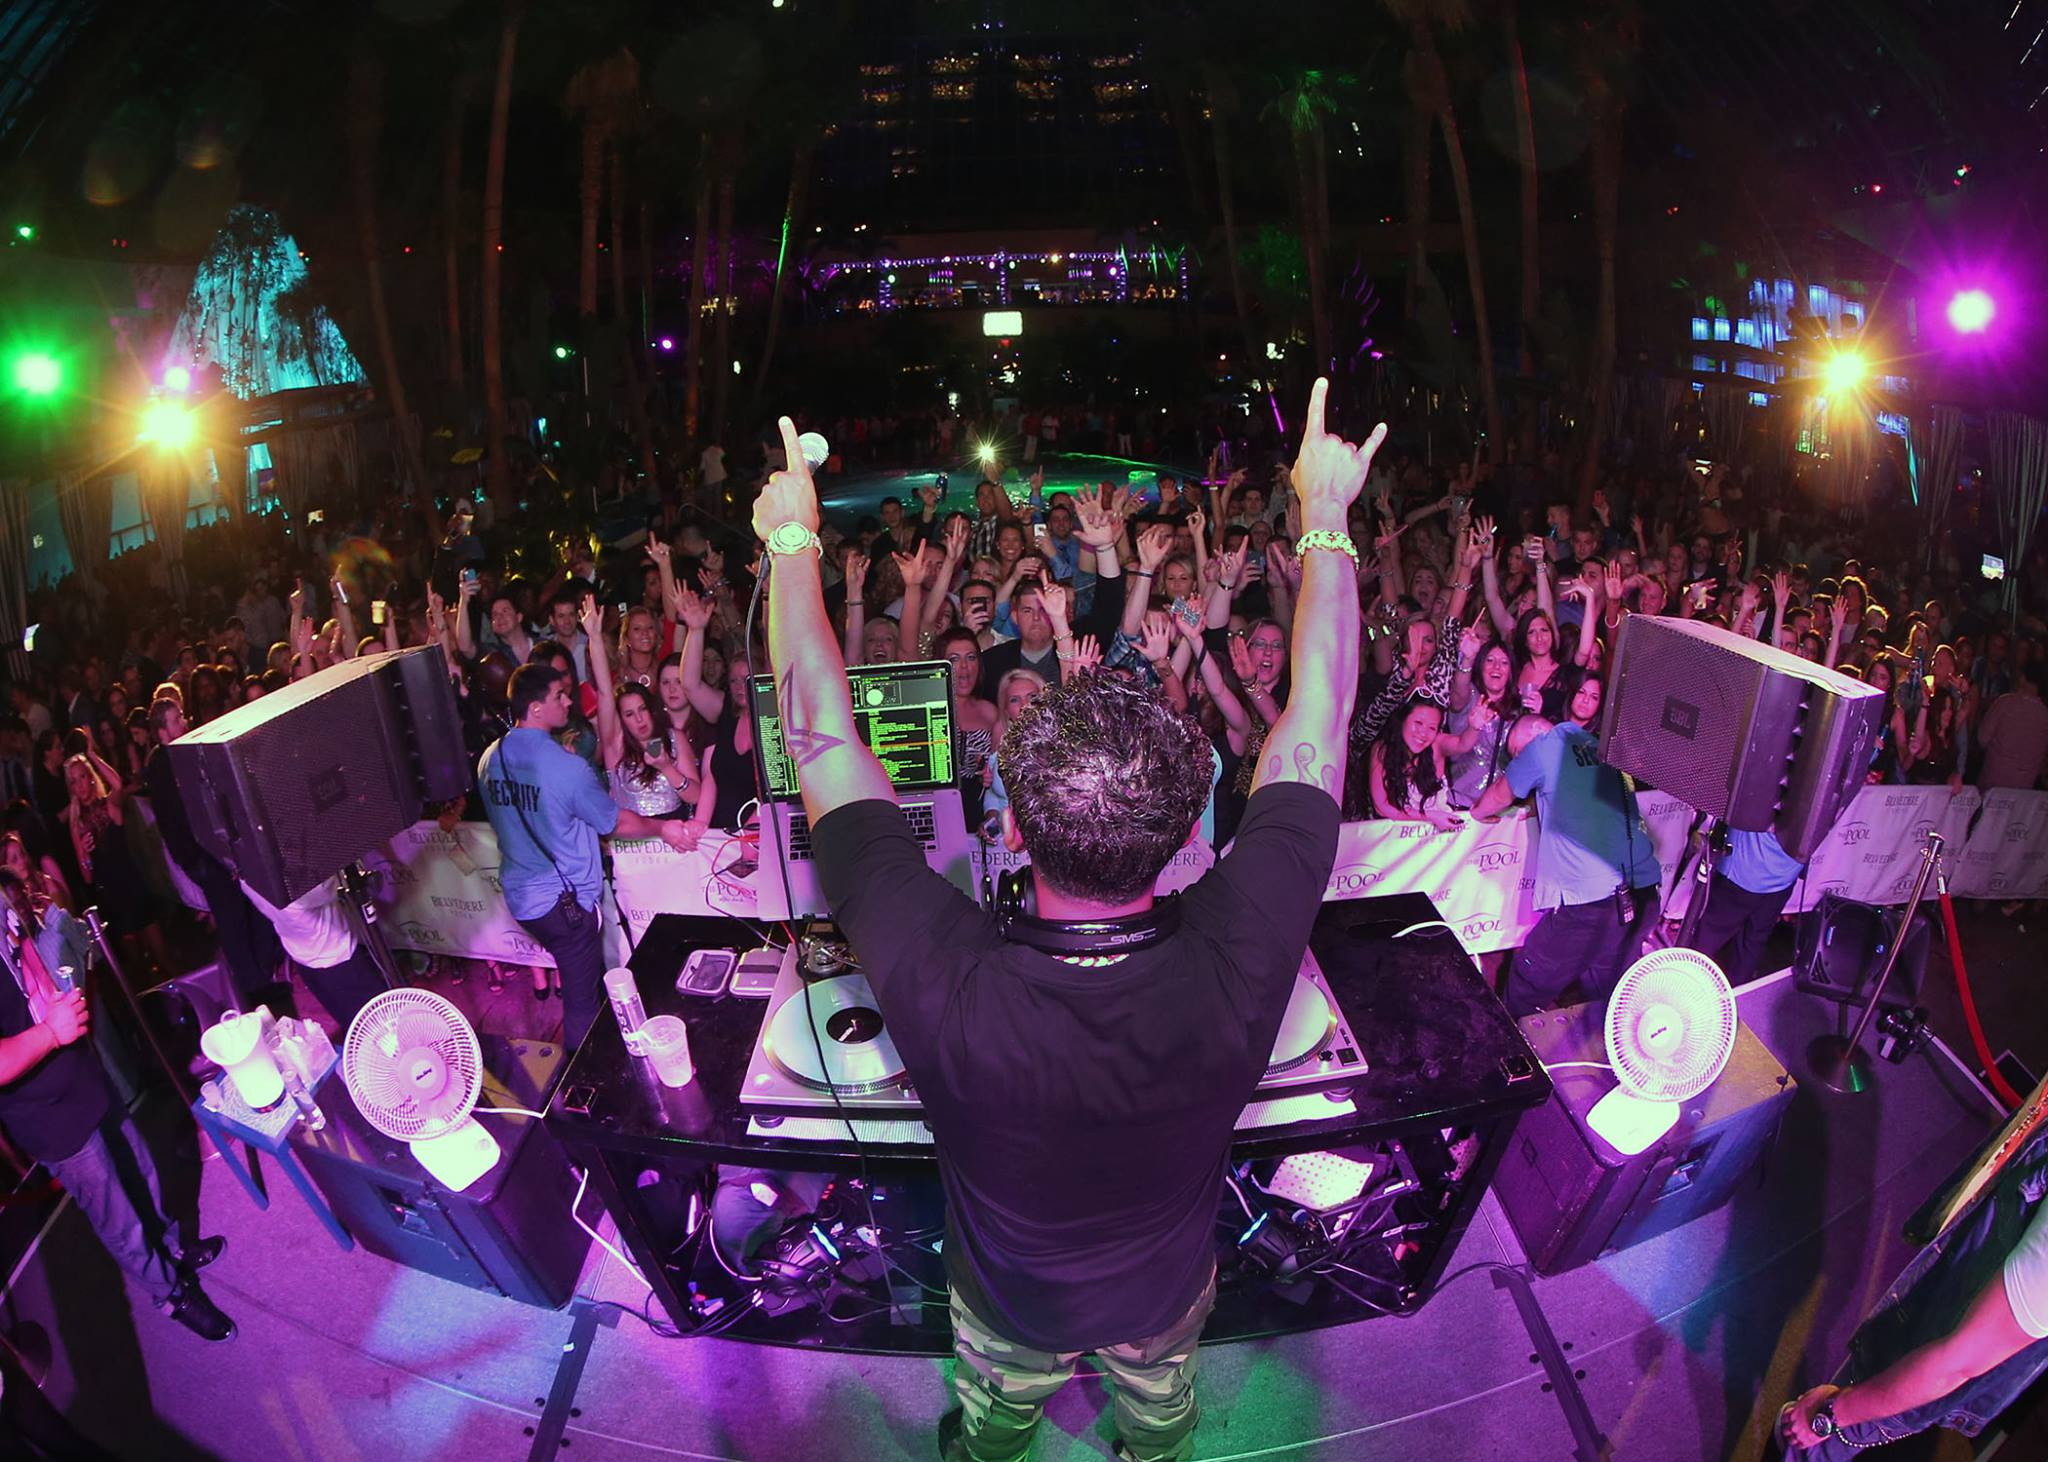 DJ Pauly D LIVE! - Saturday, December 13th The Pool After Dark at Harrahs Resort #AtlanticCity